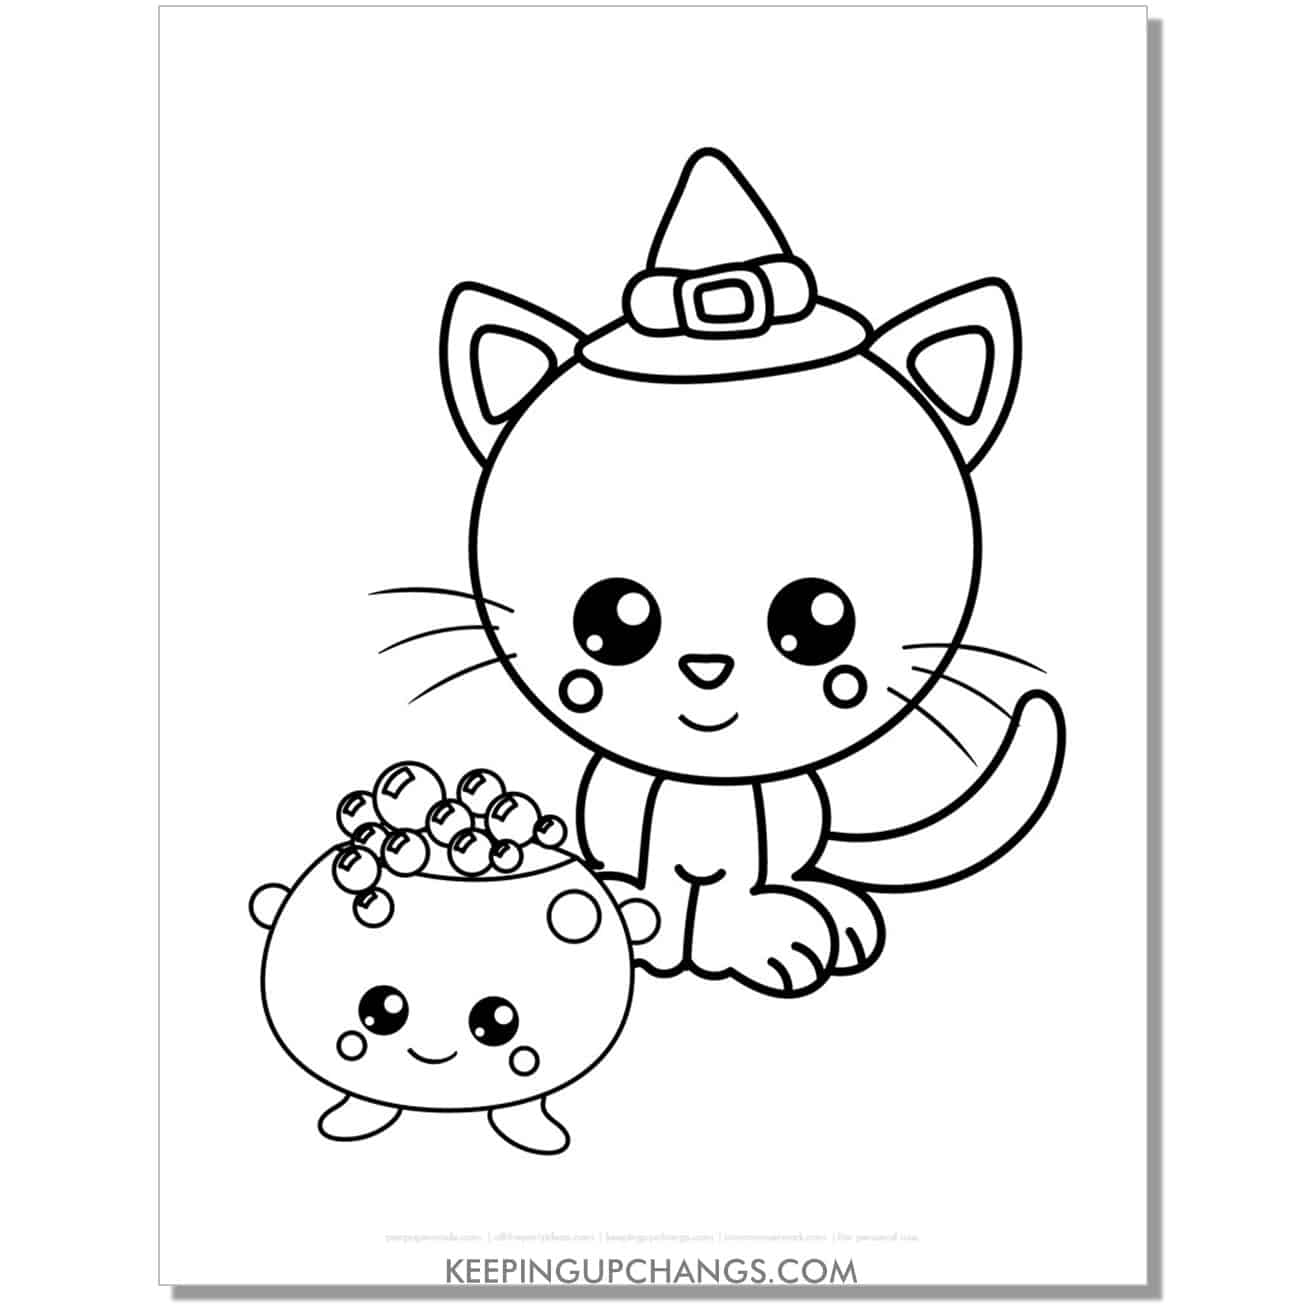 kawaii halloween cat with cauldron coloring page for kids.